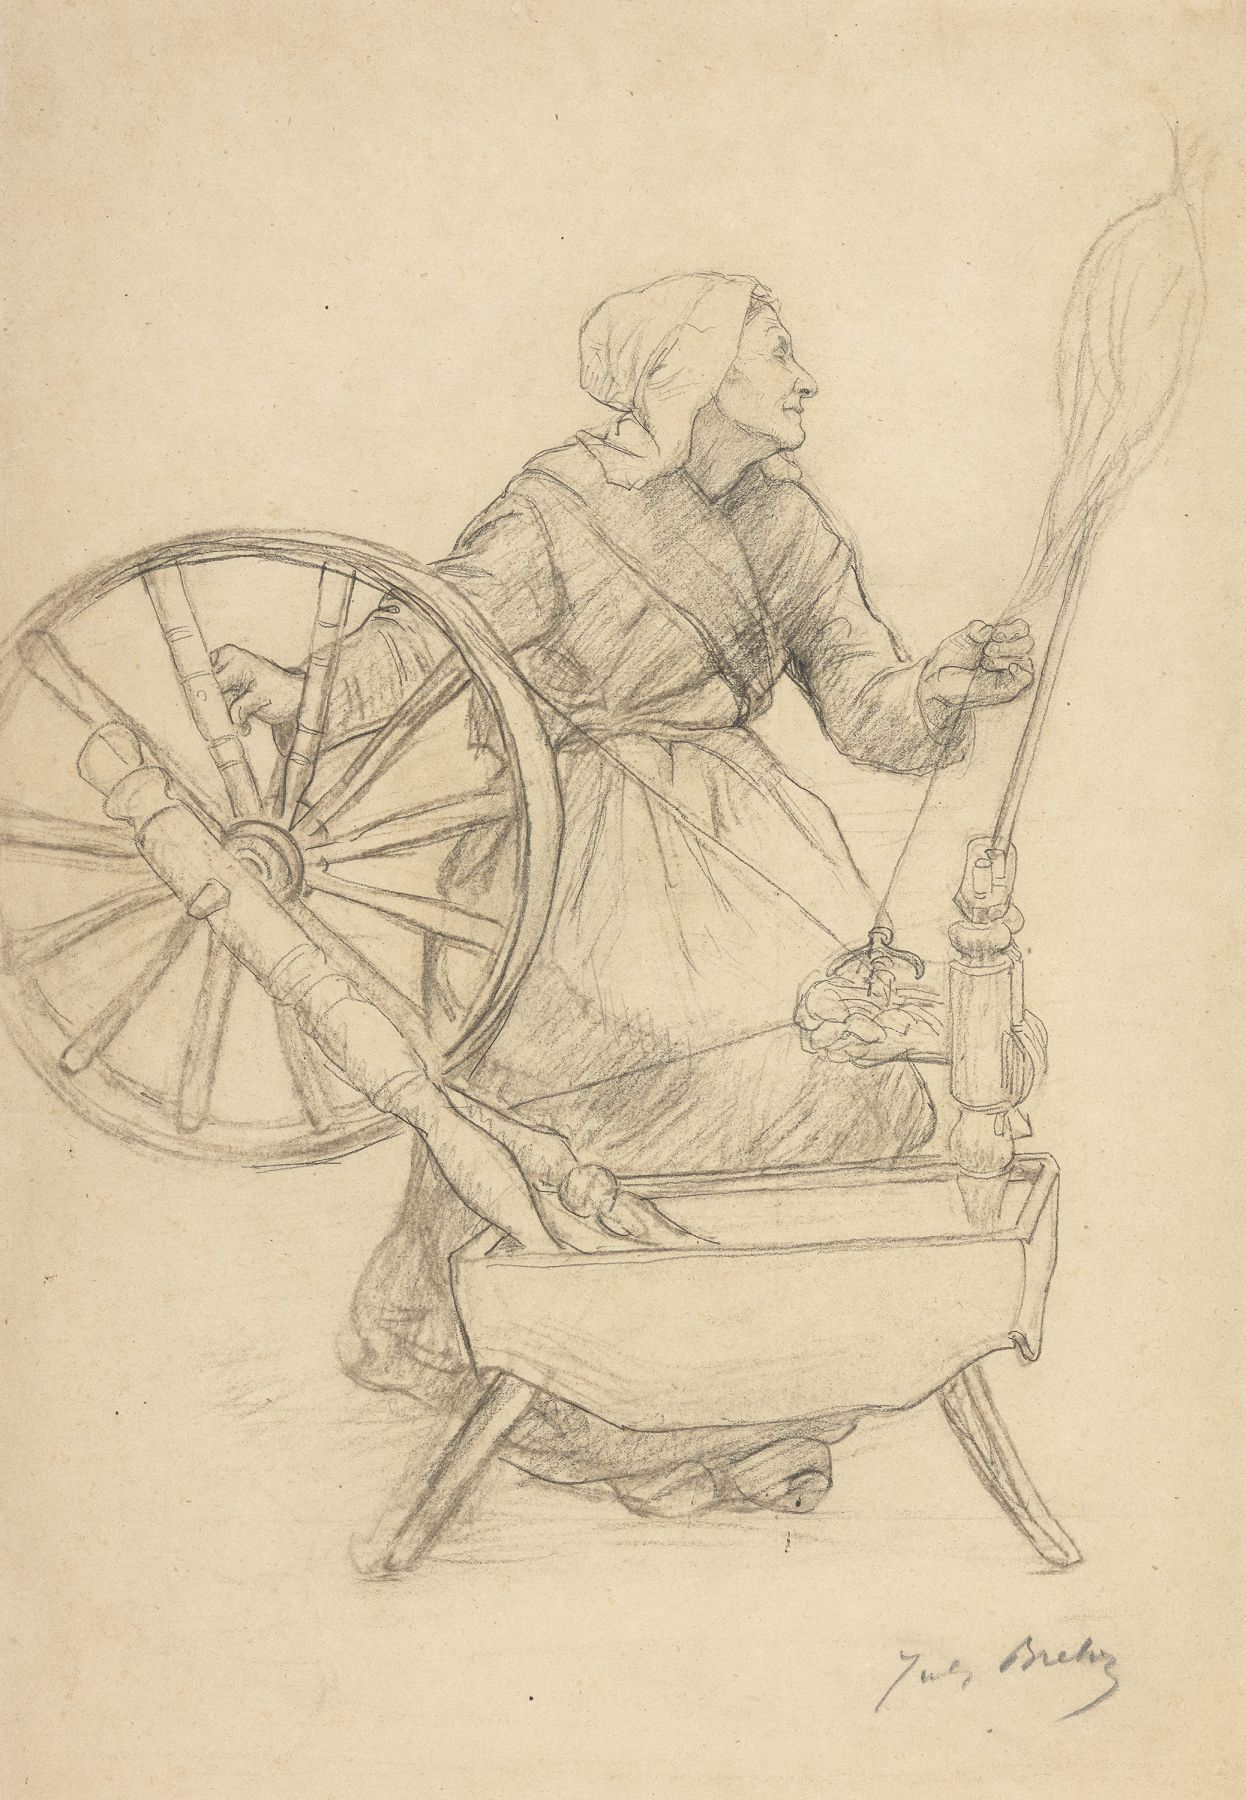 Jules Breton  La Femme au Rouet (Woman at the Spinning Wheel), 1884  Charcoal and black chalk on paper 18 1/2 x 13 3/8 inches